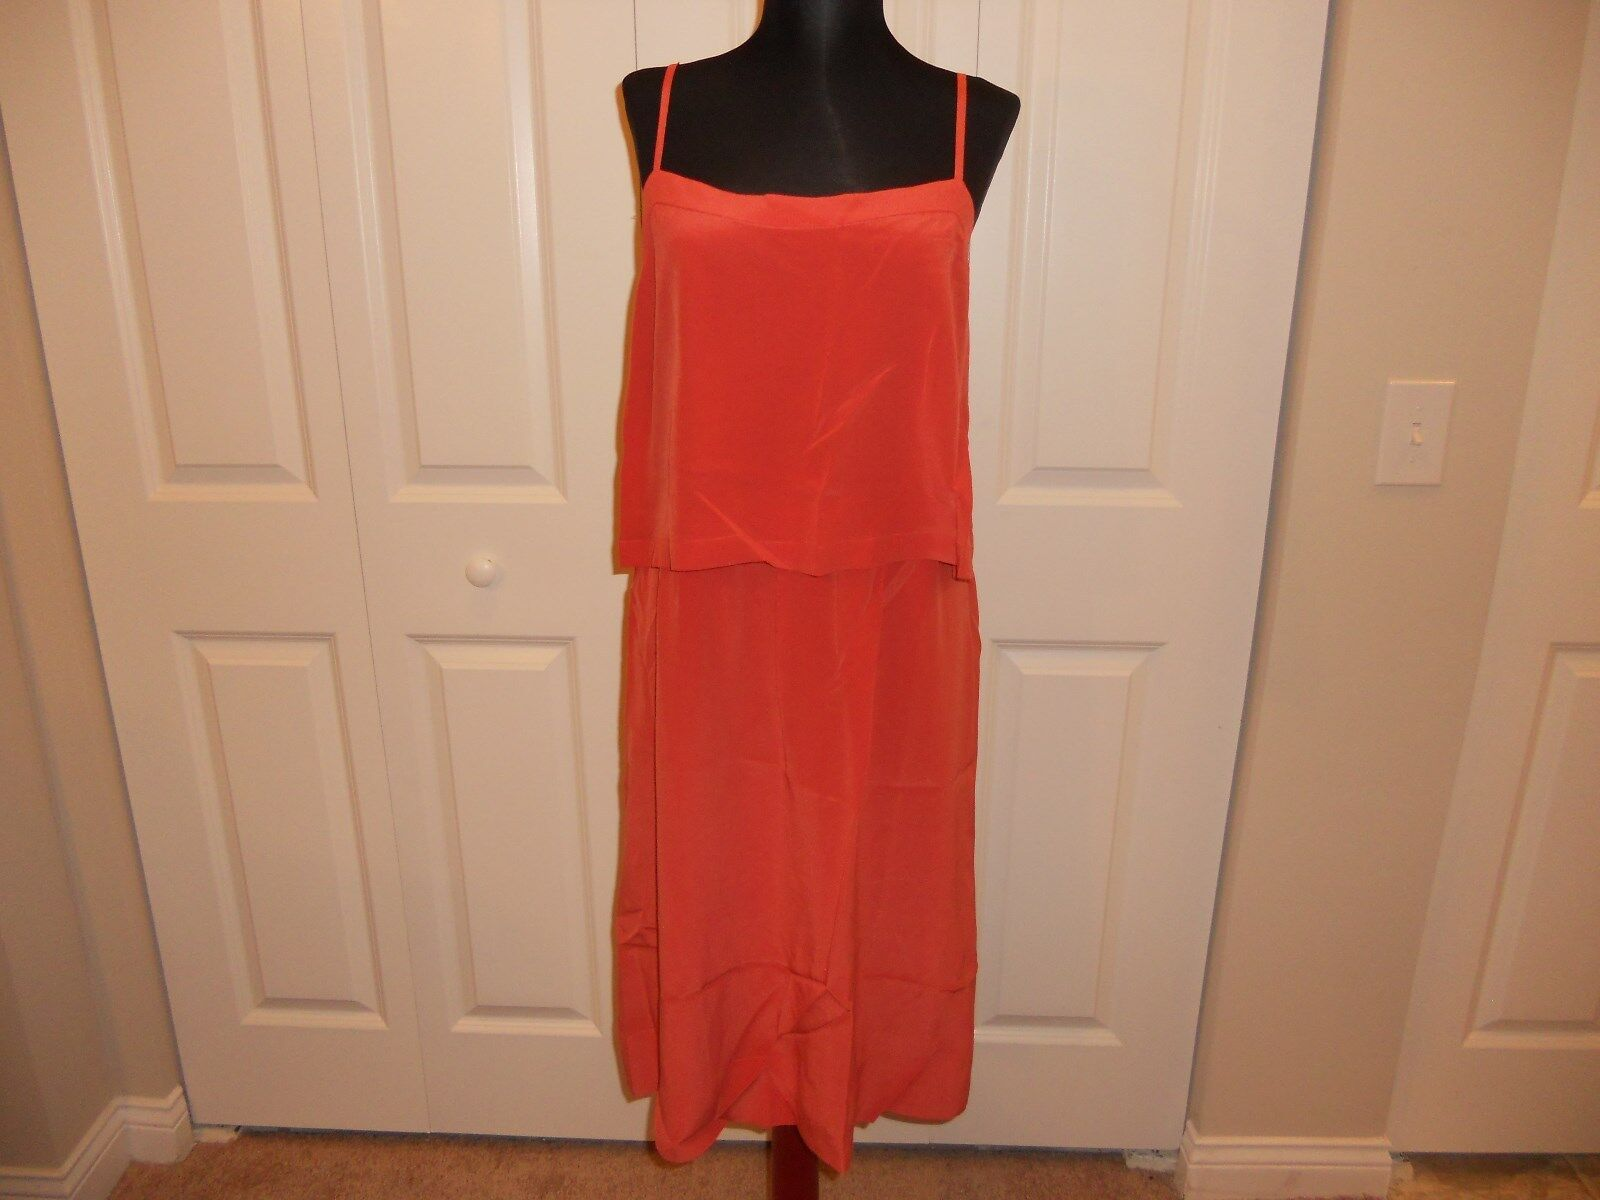 NWT MADEWELL 1937 SILK OVERLAY CAMI DRESS IN BURNT COPPER SIZE 12